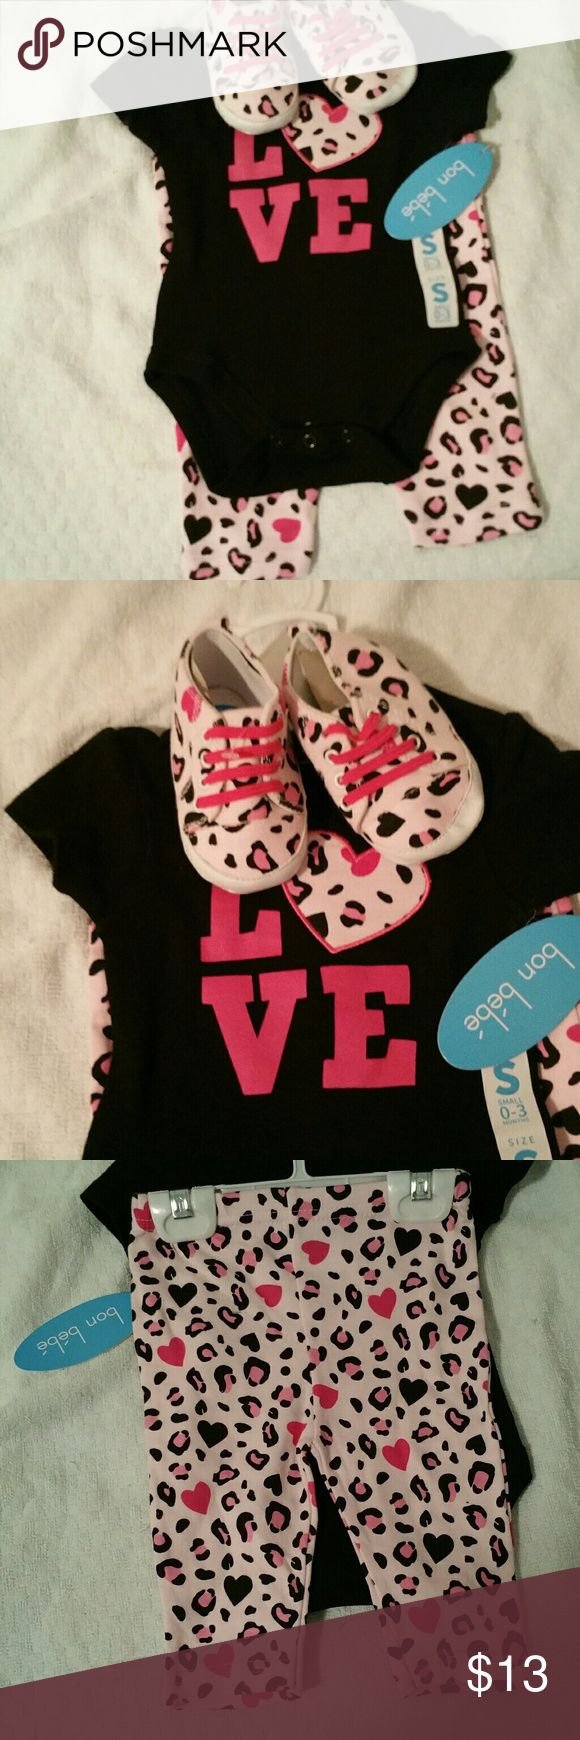 BNWT 3 pc Cheetah Outfit Short Sleeve Onsie, Pants & Shoes Bon Bebe Matching Sets